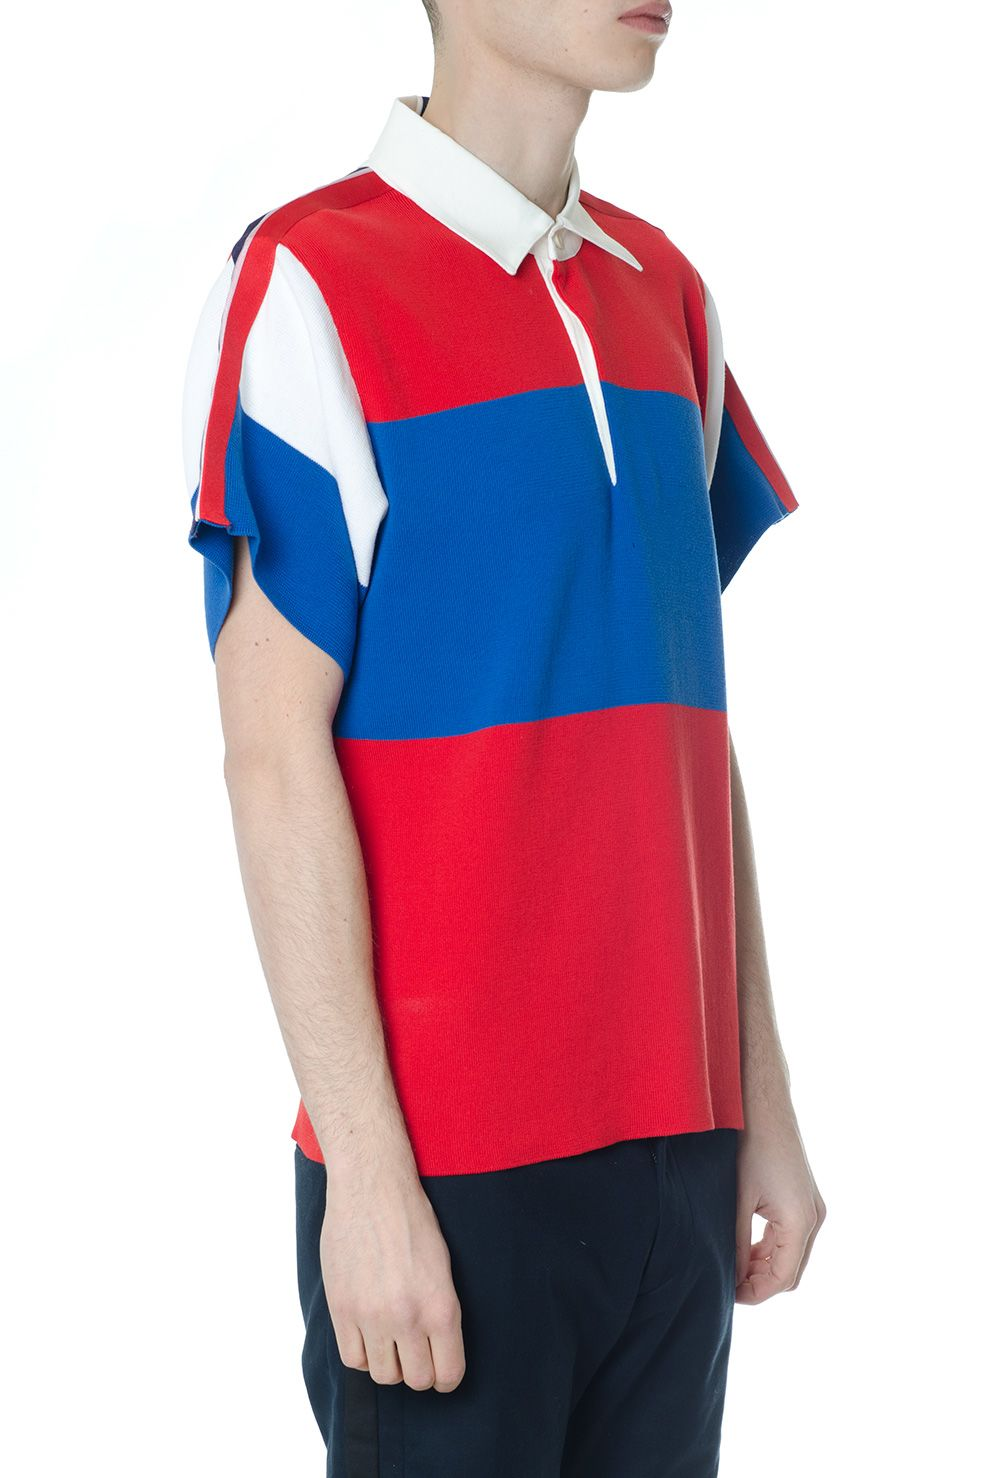 Visa Payment Cheap Online oversized rugby polo - Red Tommy Hilfiger Clearance Pay With Visa Shop Offer Cheap Online Clearance Sale 920gtF5yGW